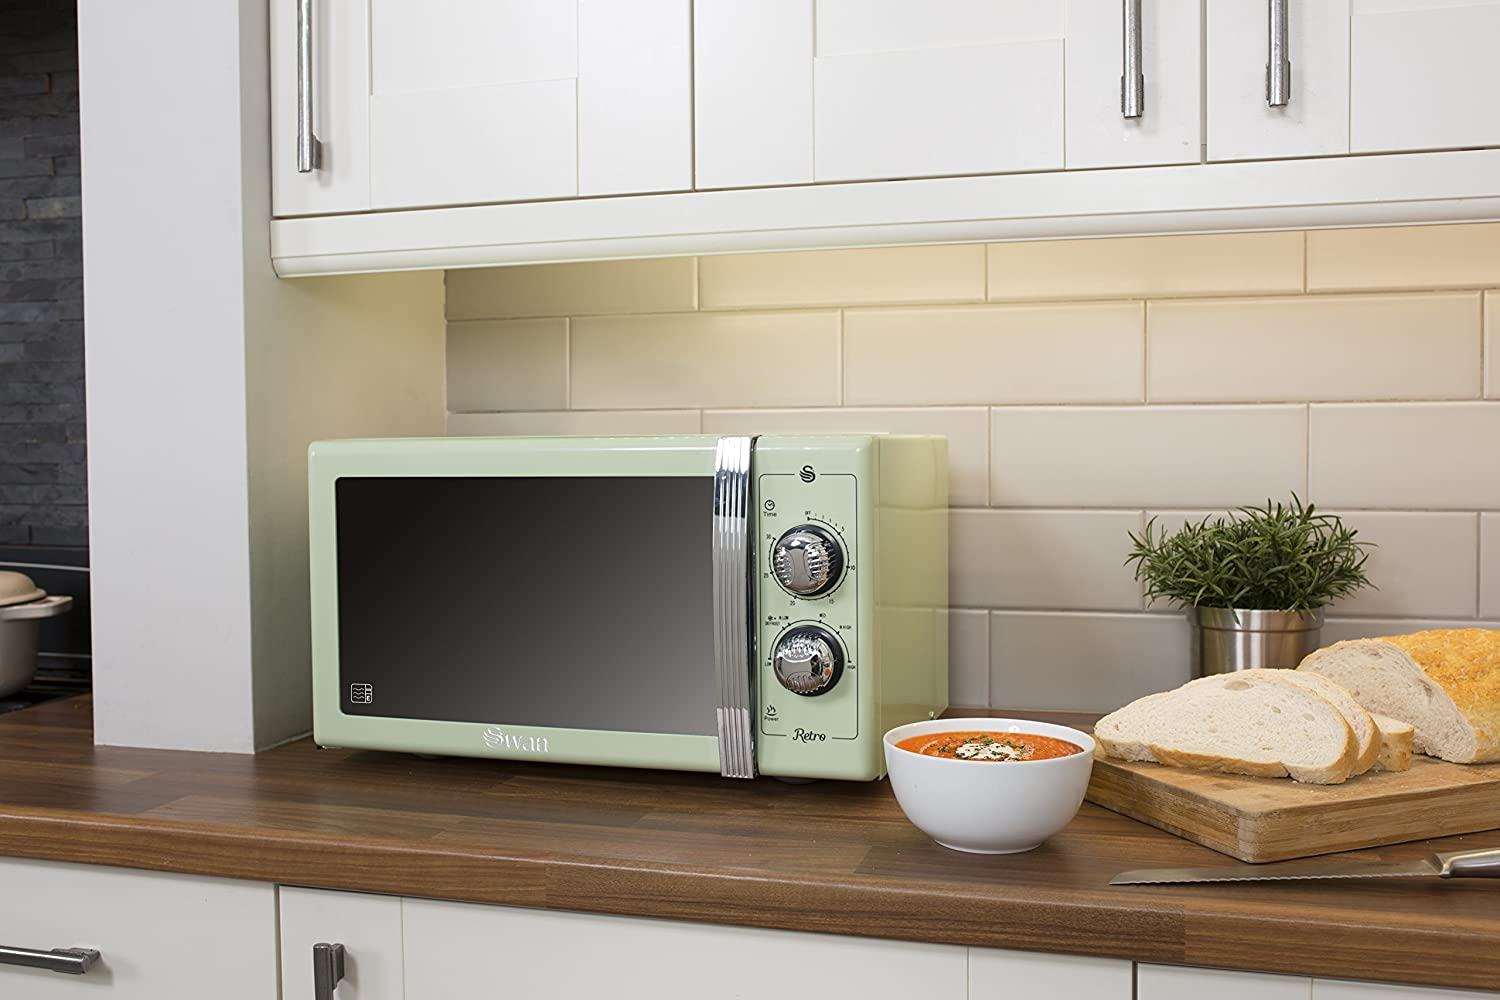 SWAN Retro Manual Microwave, 25 Litre, 900 W, Green